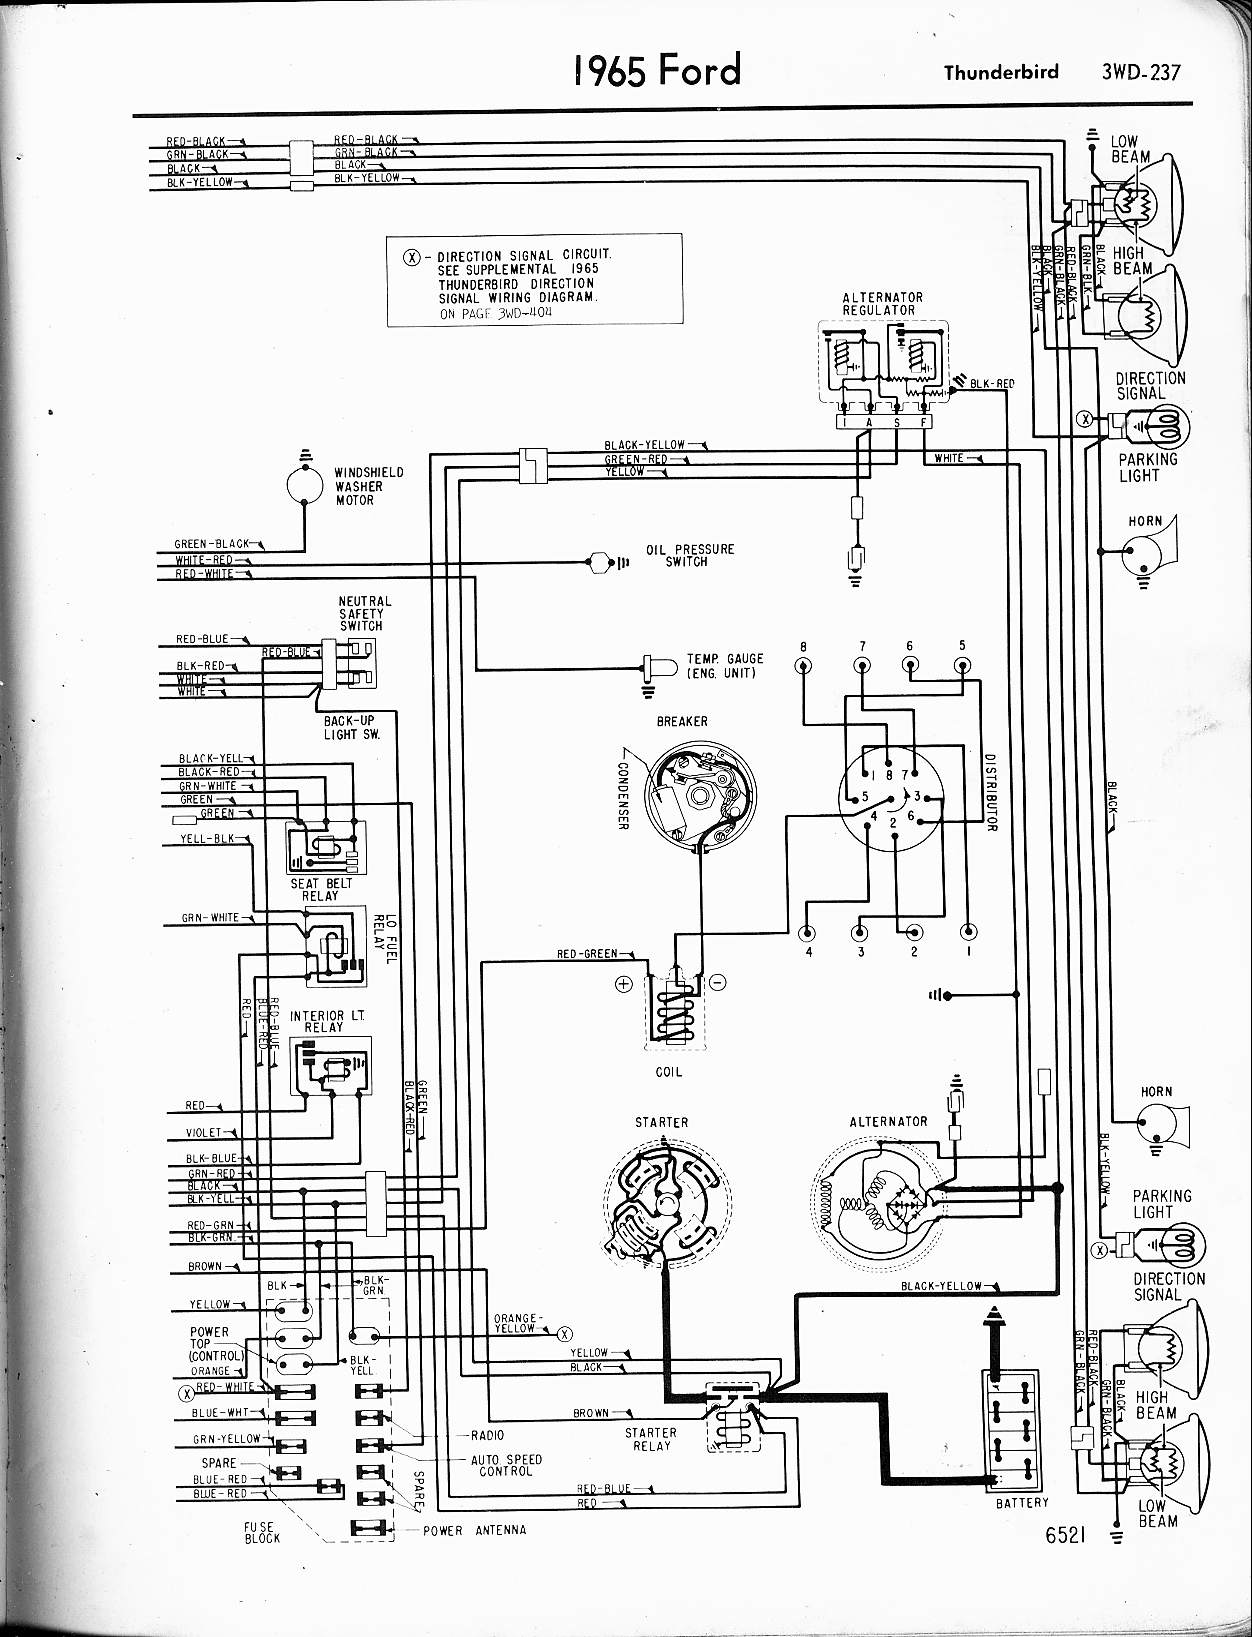 1965 thunderbird wiring diagrams wiring diagram u2022 rh tinyforge co wiring diagram horn circuit 1965 thunderbird 1965 thunderbird alternator wiring diagram